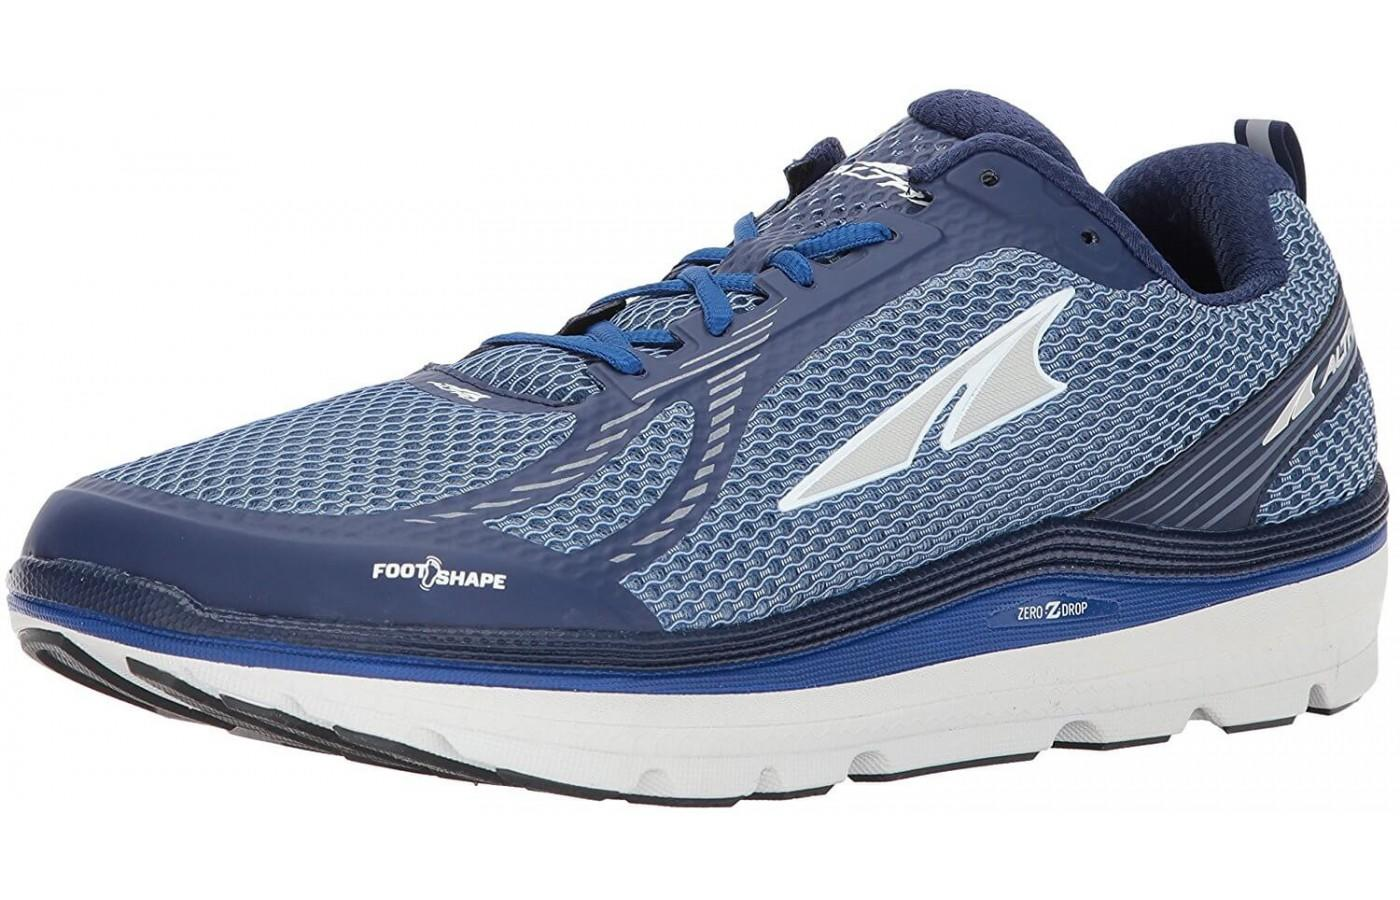 The Altra Paradigm 3.0 shown from the front/side